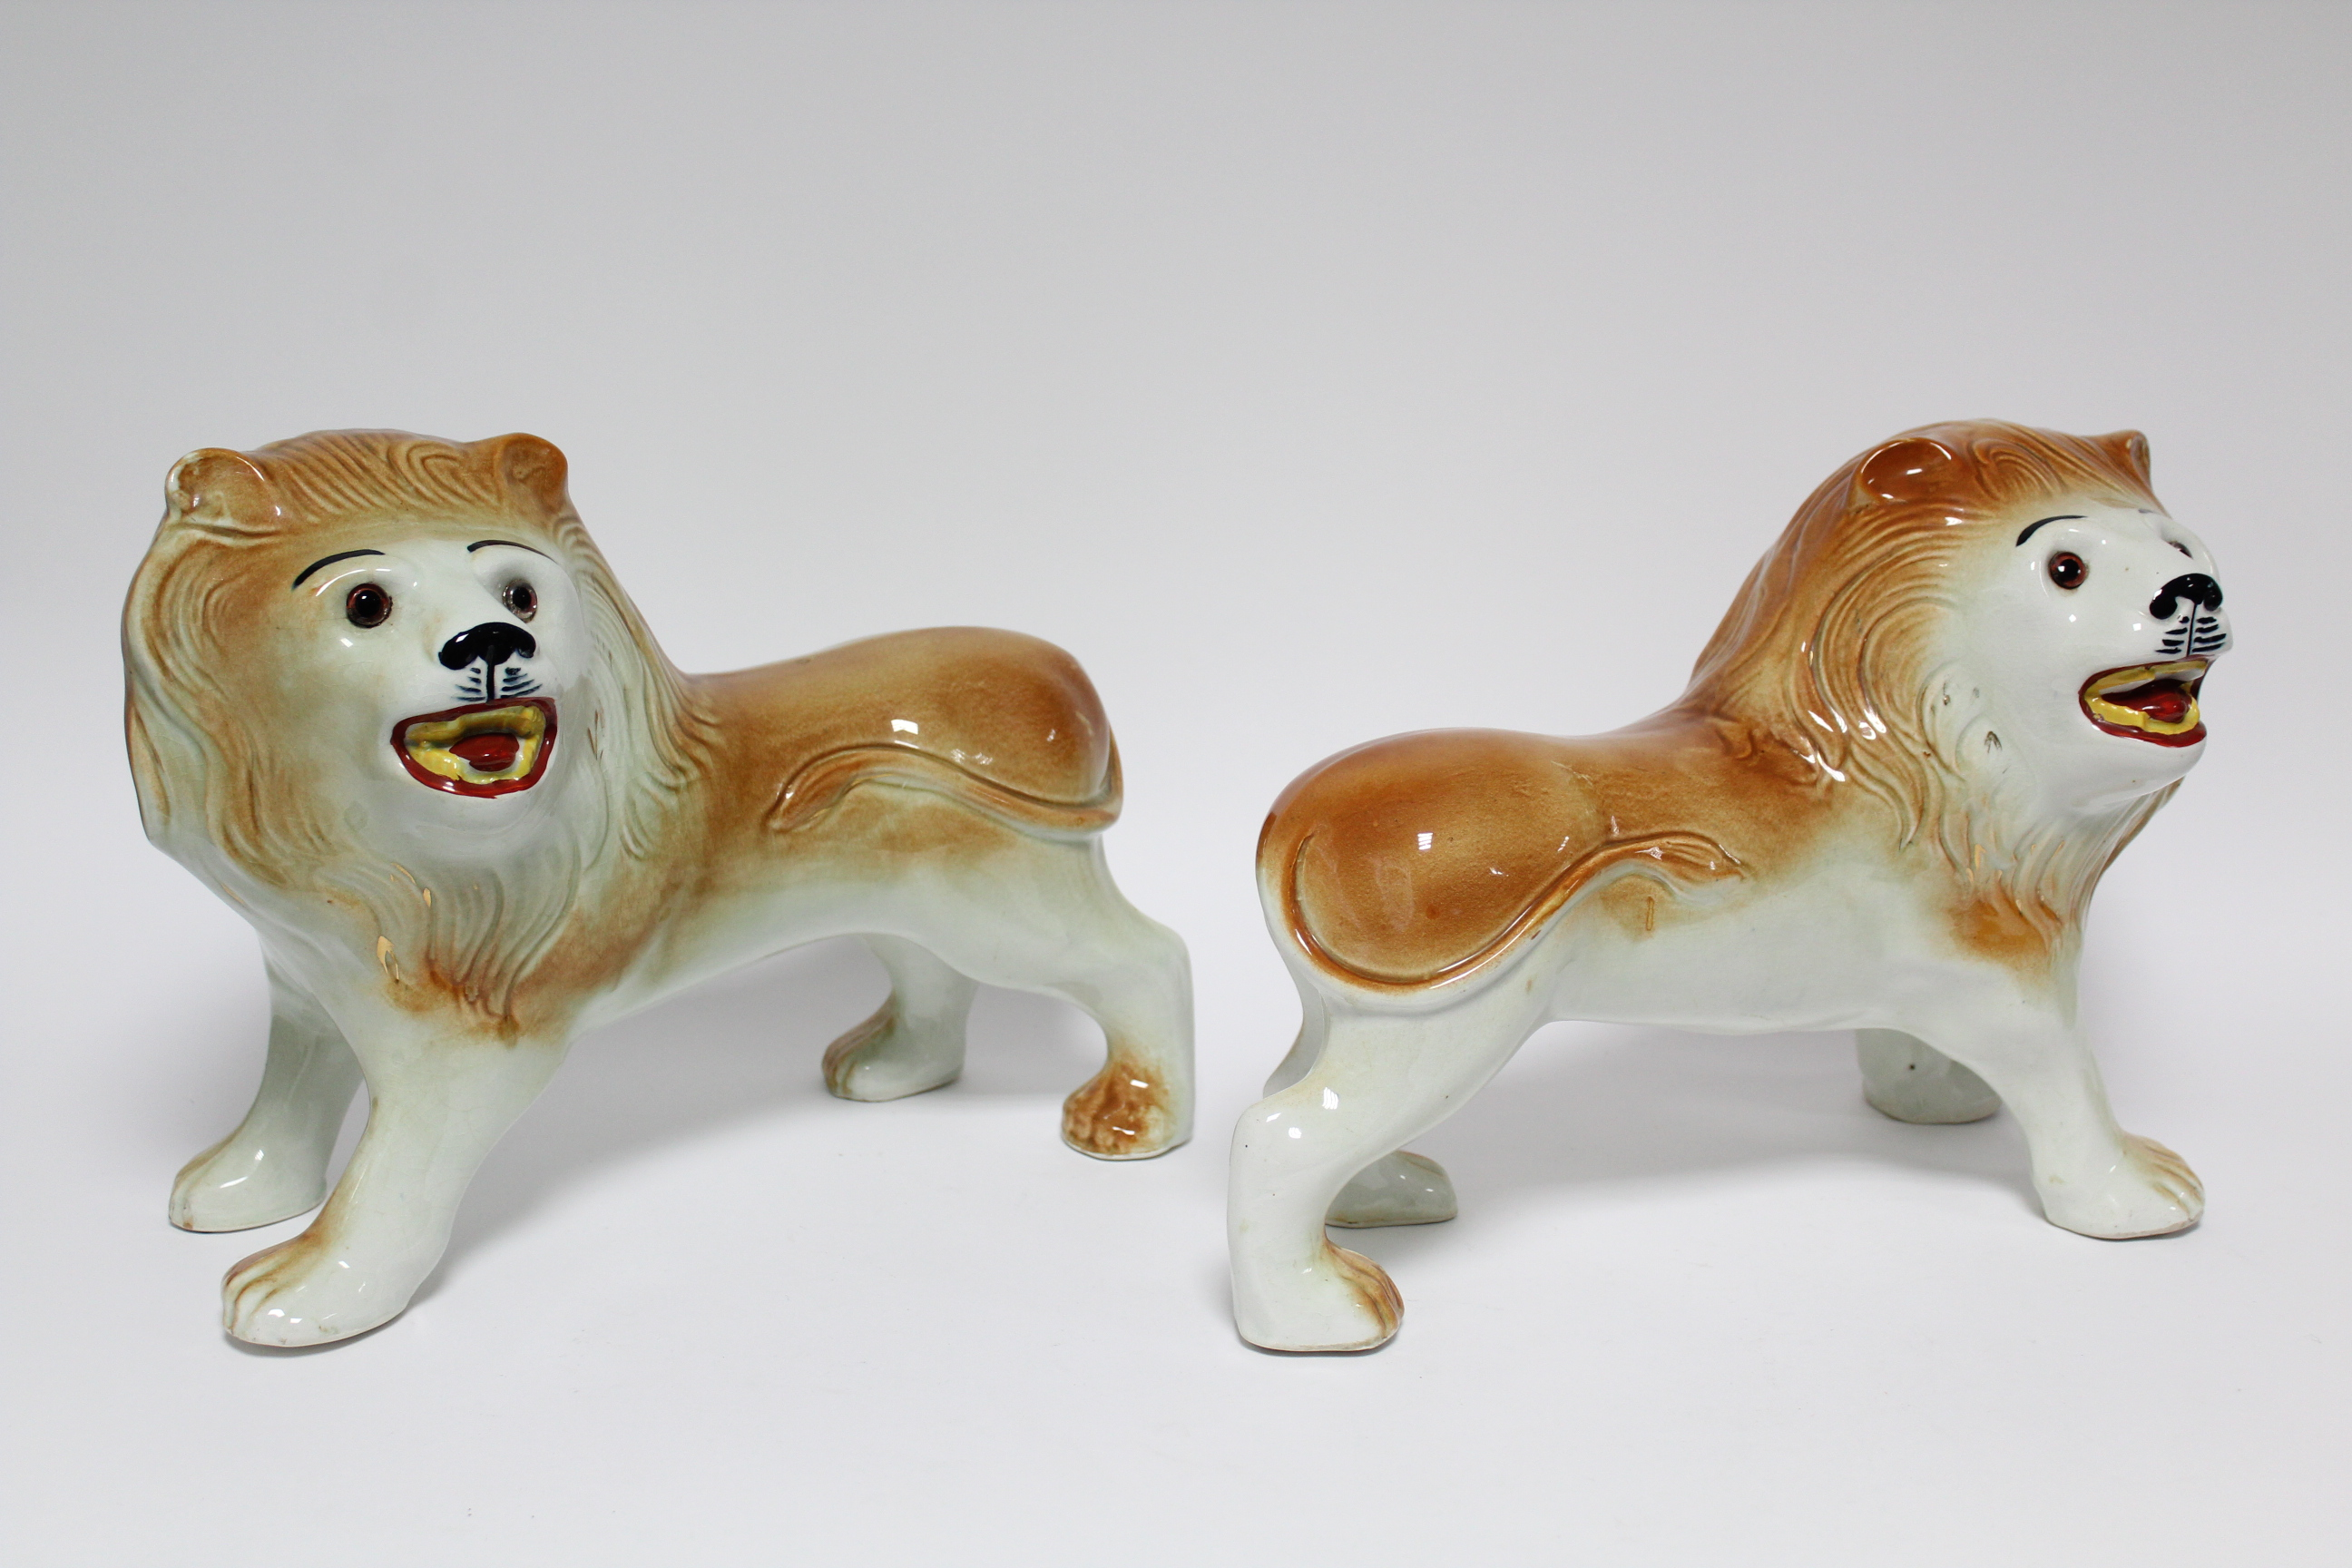 Lot 53 - A pair of early 20th century Sadler Pottery large standing models of roaring lions with inset